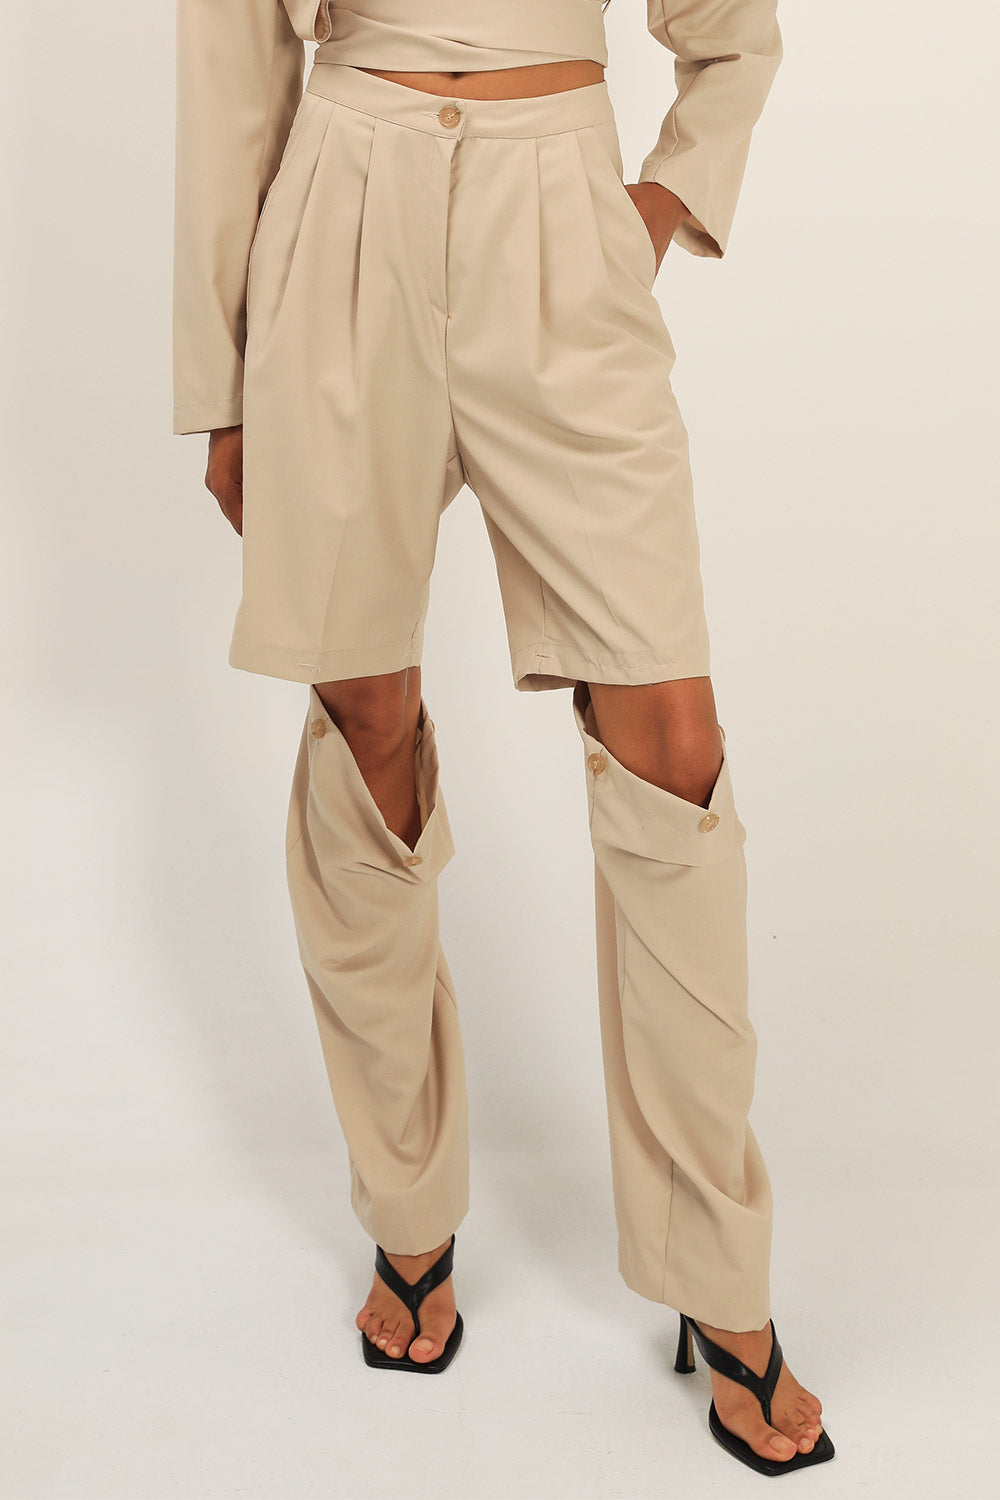 storets.com Celine Two-Way Pants